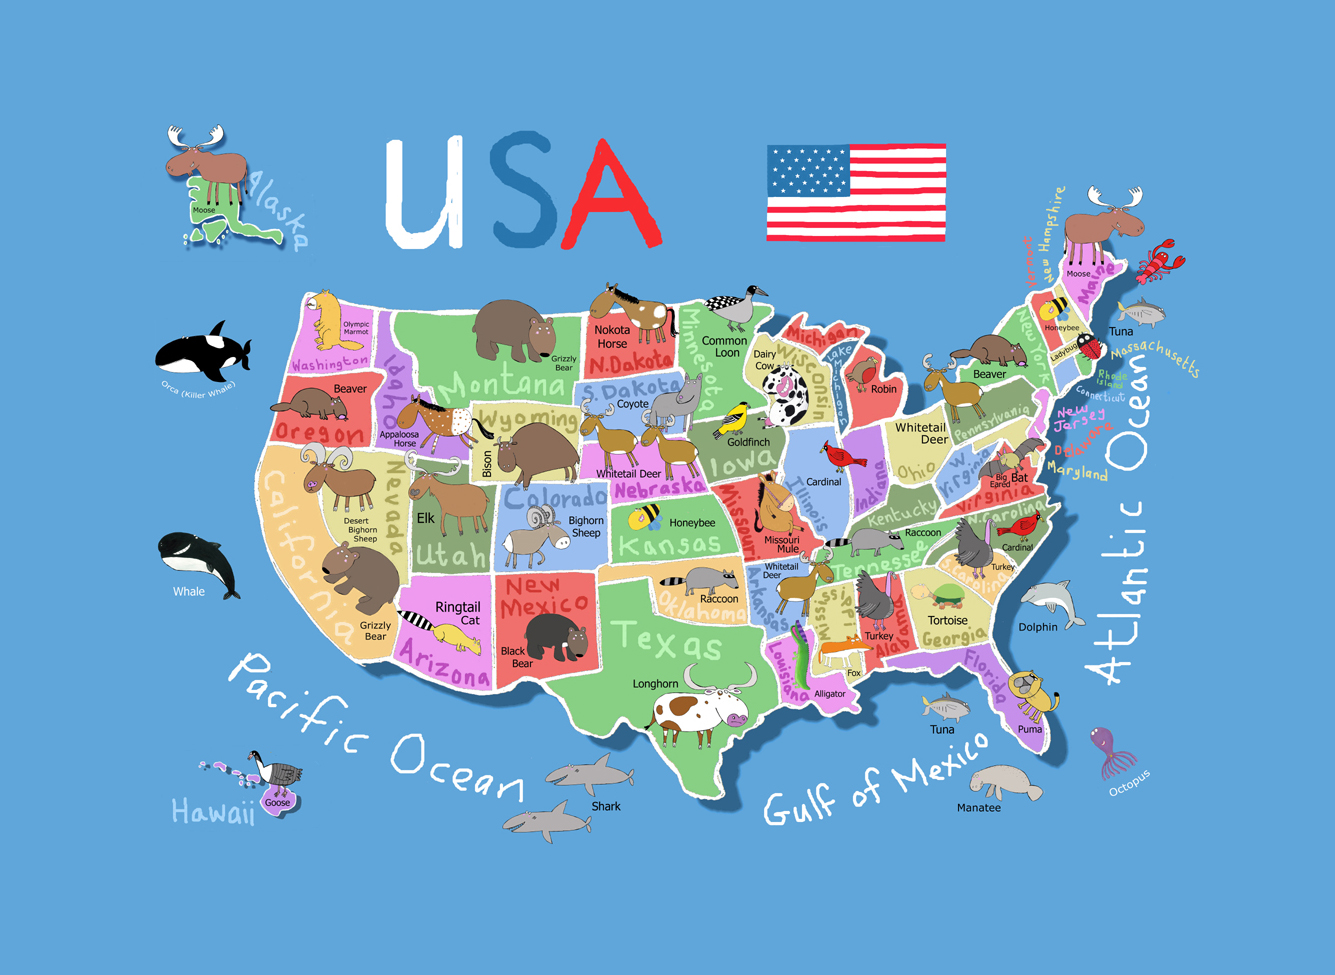 Detailed cartoon map of the USA | USA | Maps of the USA ... on map spain, united states maps usa, population pyramid for usa, map france, road map usa, map of usa east coast, travel for usa, weather for usa, map services, elevation for usa, coat of arms for usa, minneapolis usa, map singapore, map new zealand, state bird for usa, flag for usa, code for usa, map of usa with states and cities, calendar for usa, map india,